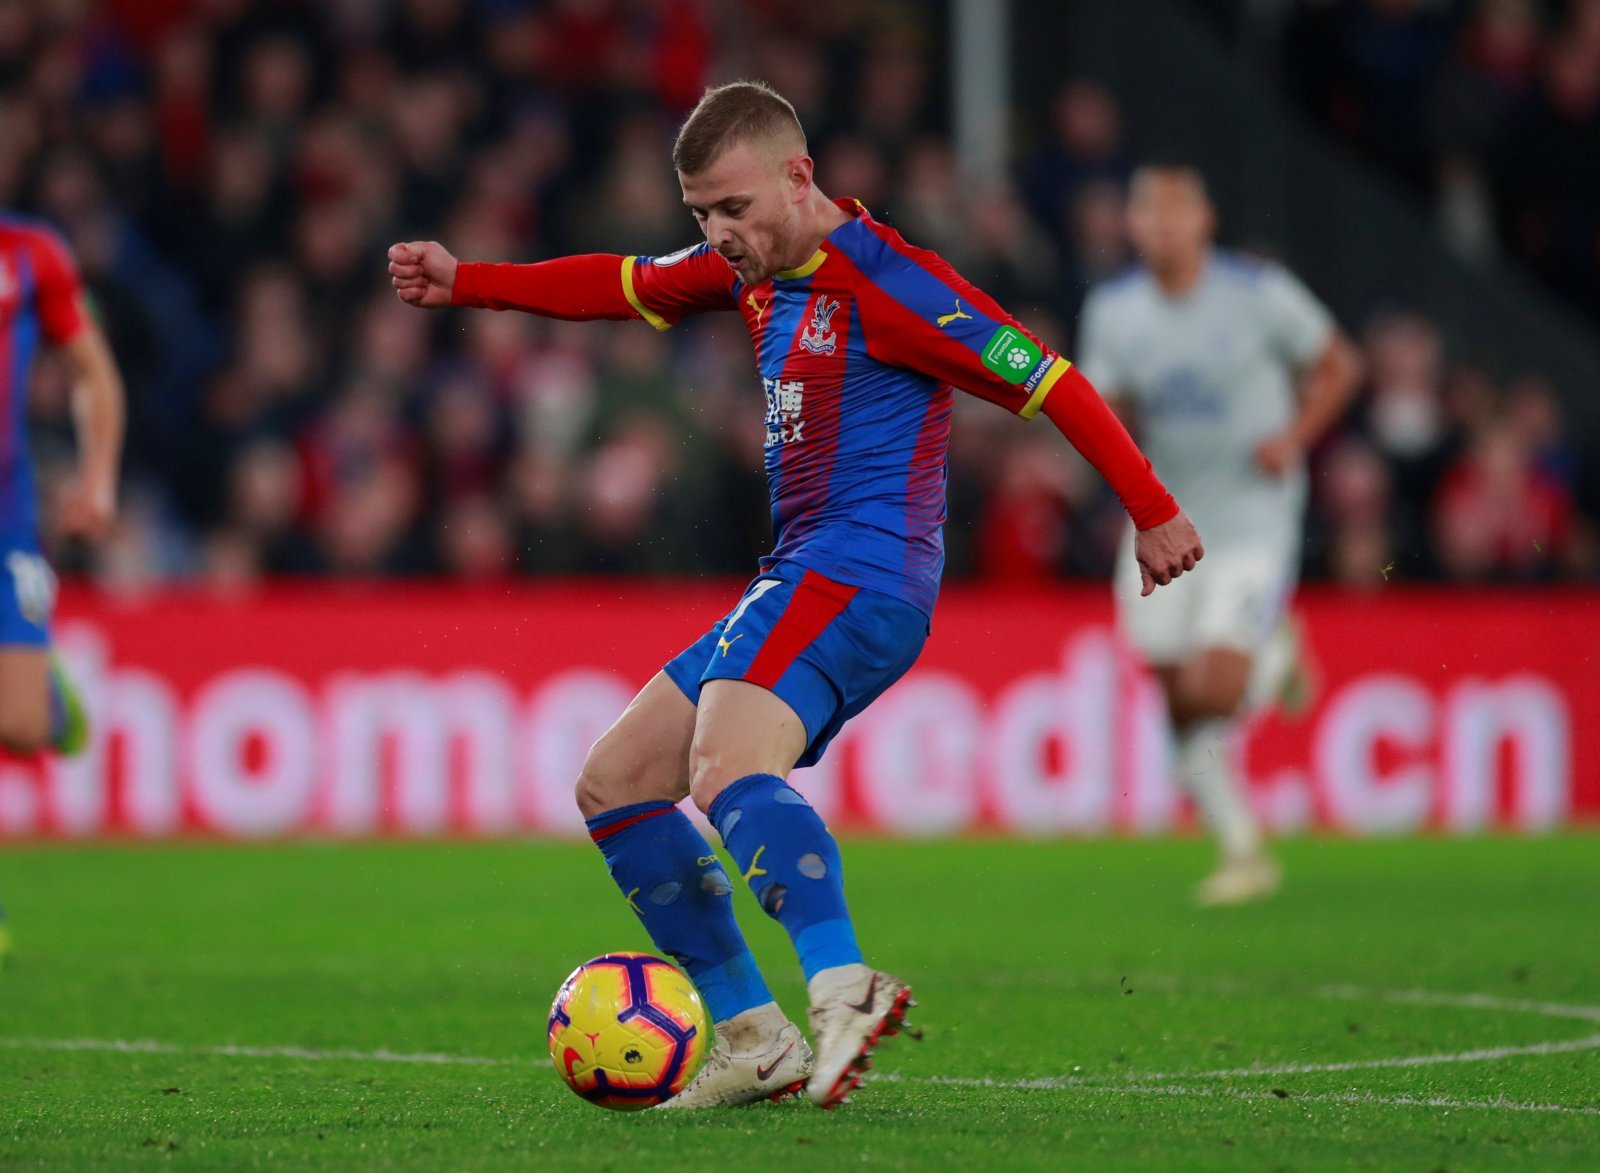 Crystal Palace: How Max Meyer's failings reveal a club with a lack of ambition